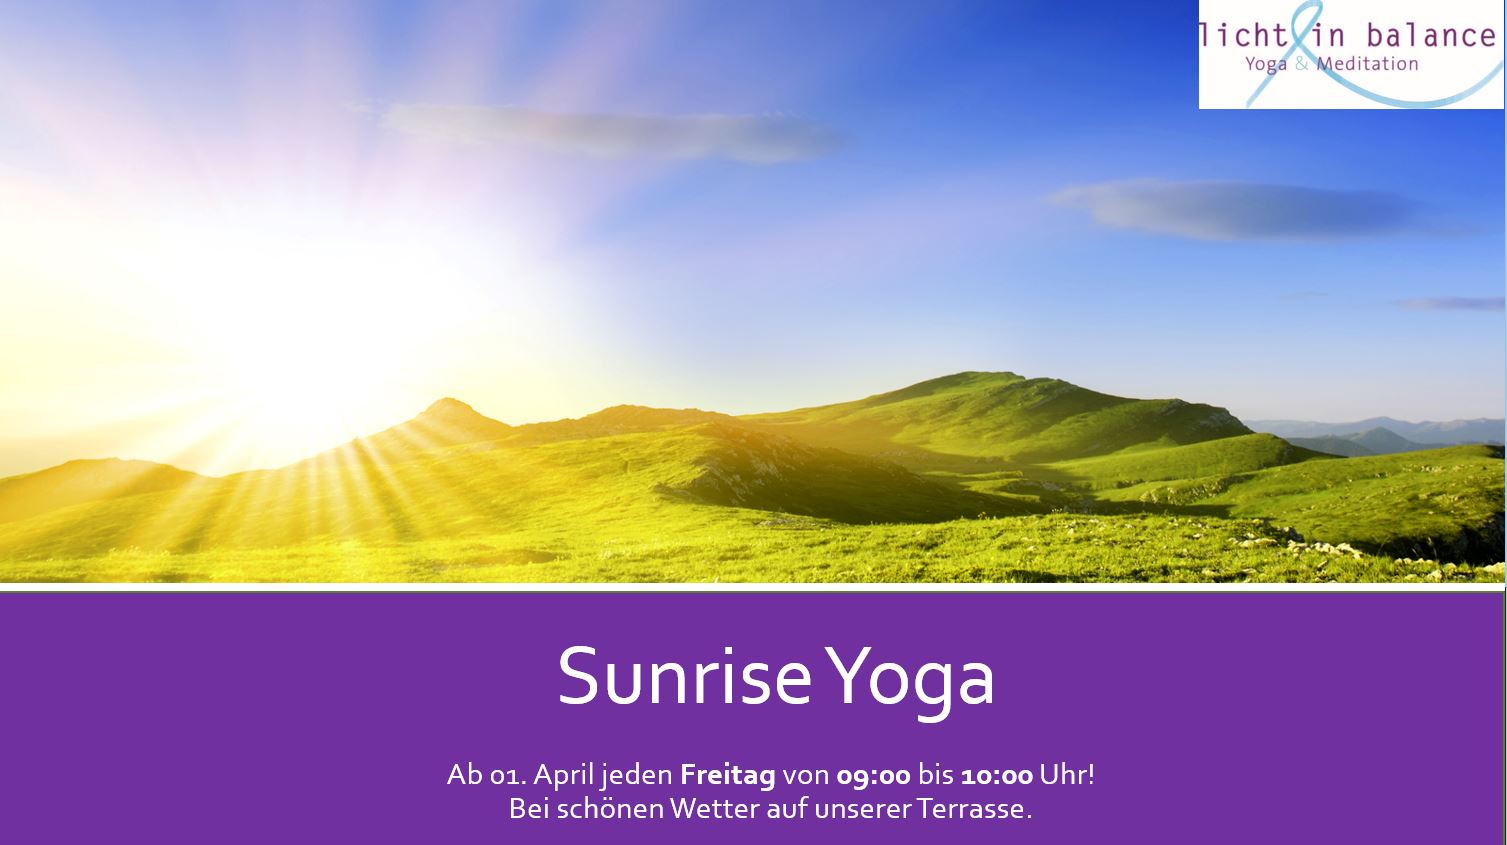 Sunrise_Yoga_Freitags